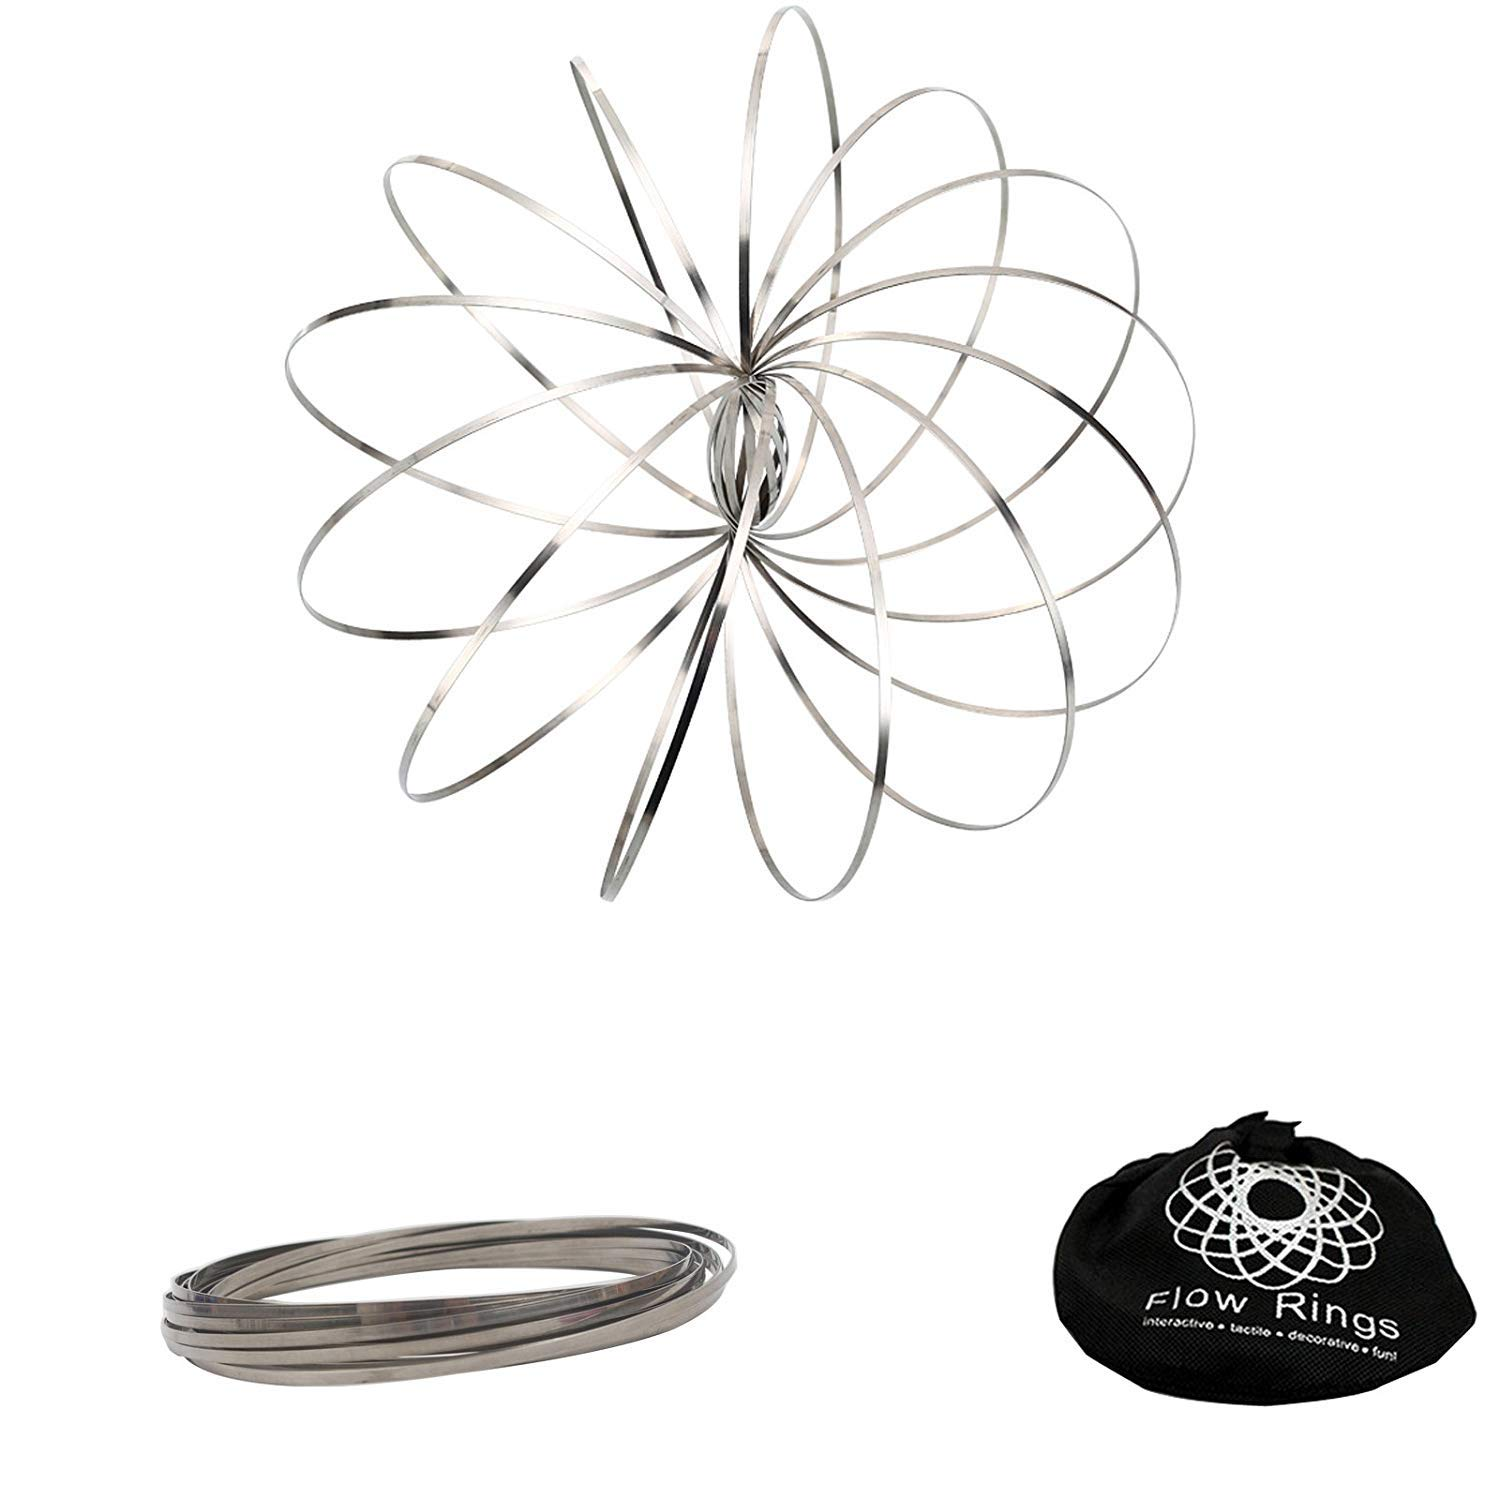 bennu Flow Ring Kinetic Spring Toy 3D Sculpture Ring Silver,Colorful